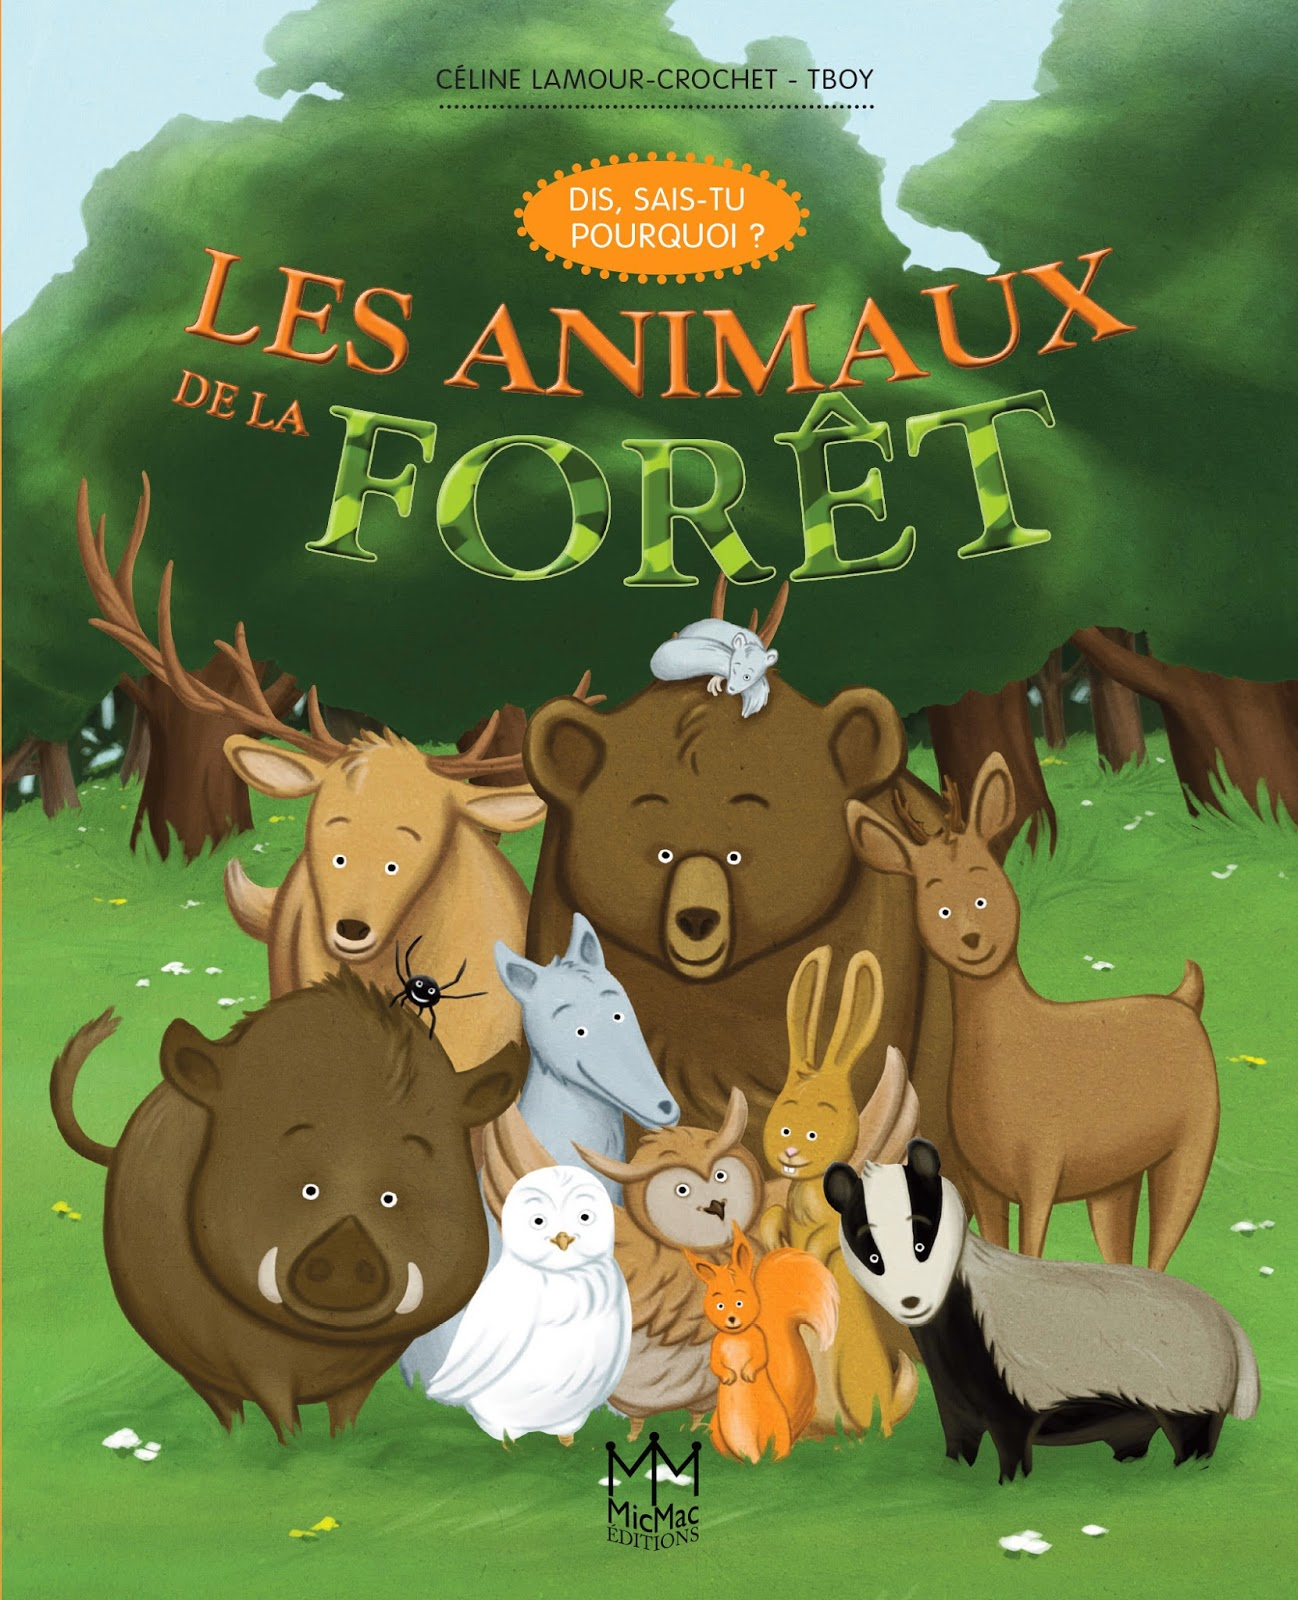 http://www.amazon.fr/animaux-for%C3%AAt-Dis-sais-tu-pourquoi/dp/236221284X/ref=sr_1_31?s=books&ie=UTF8&qid=1390764849&sr=1-31&keywords=c%C3%A9line+lamour-crochet